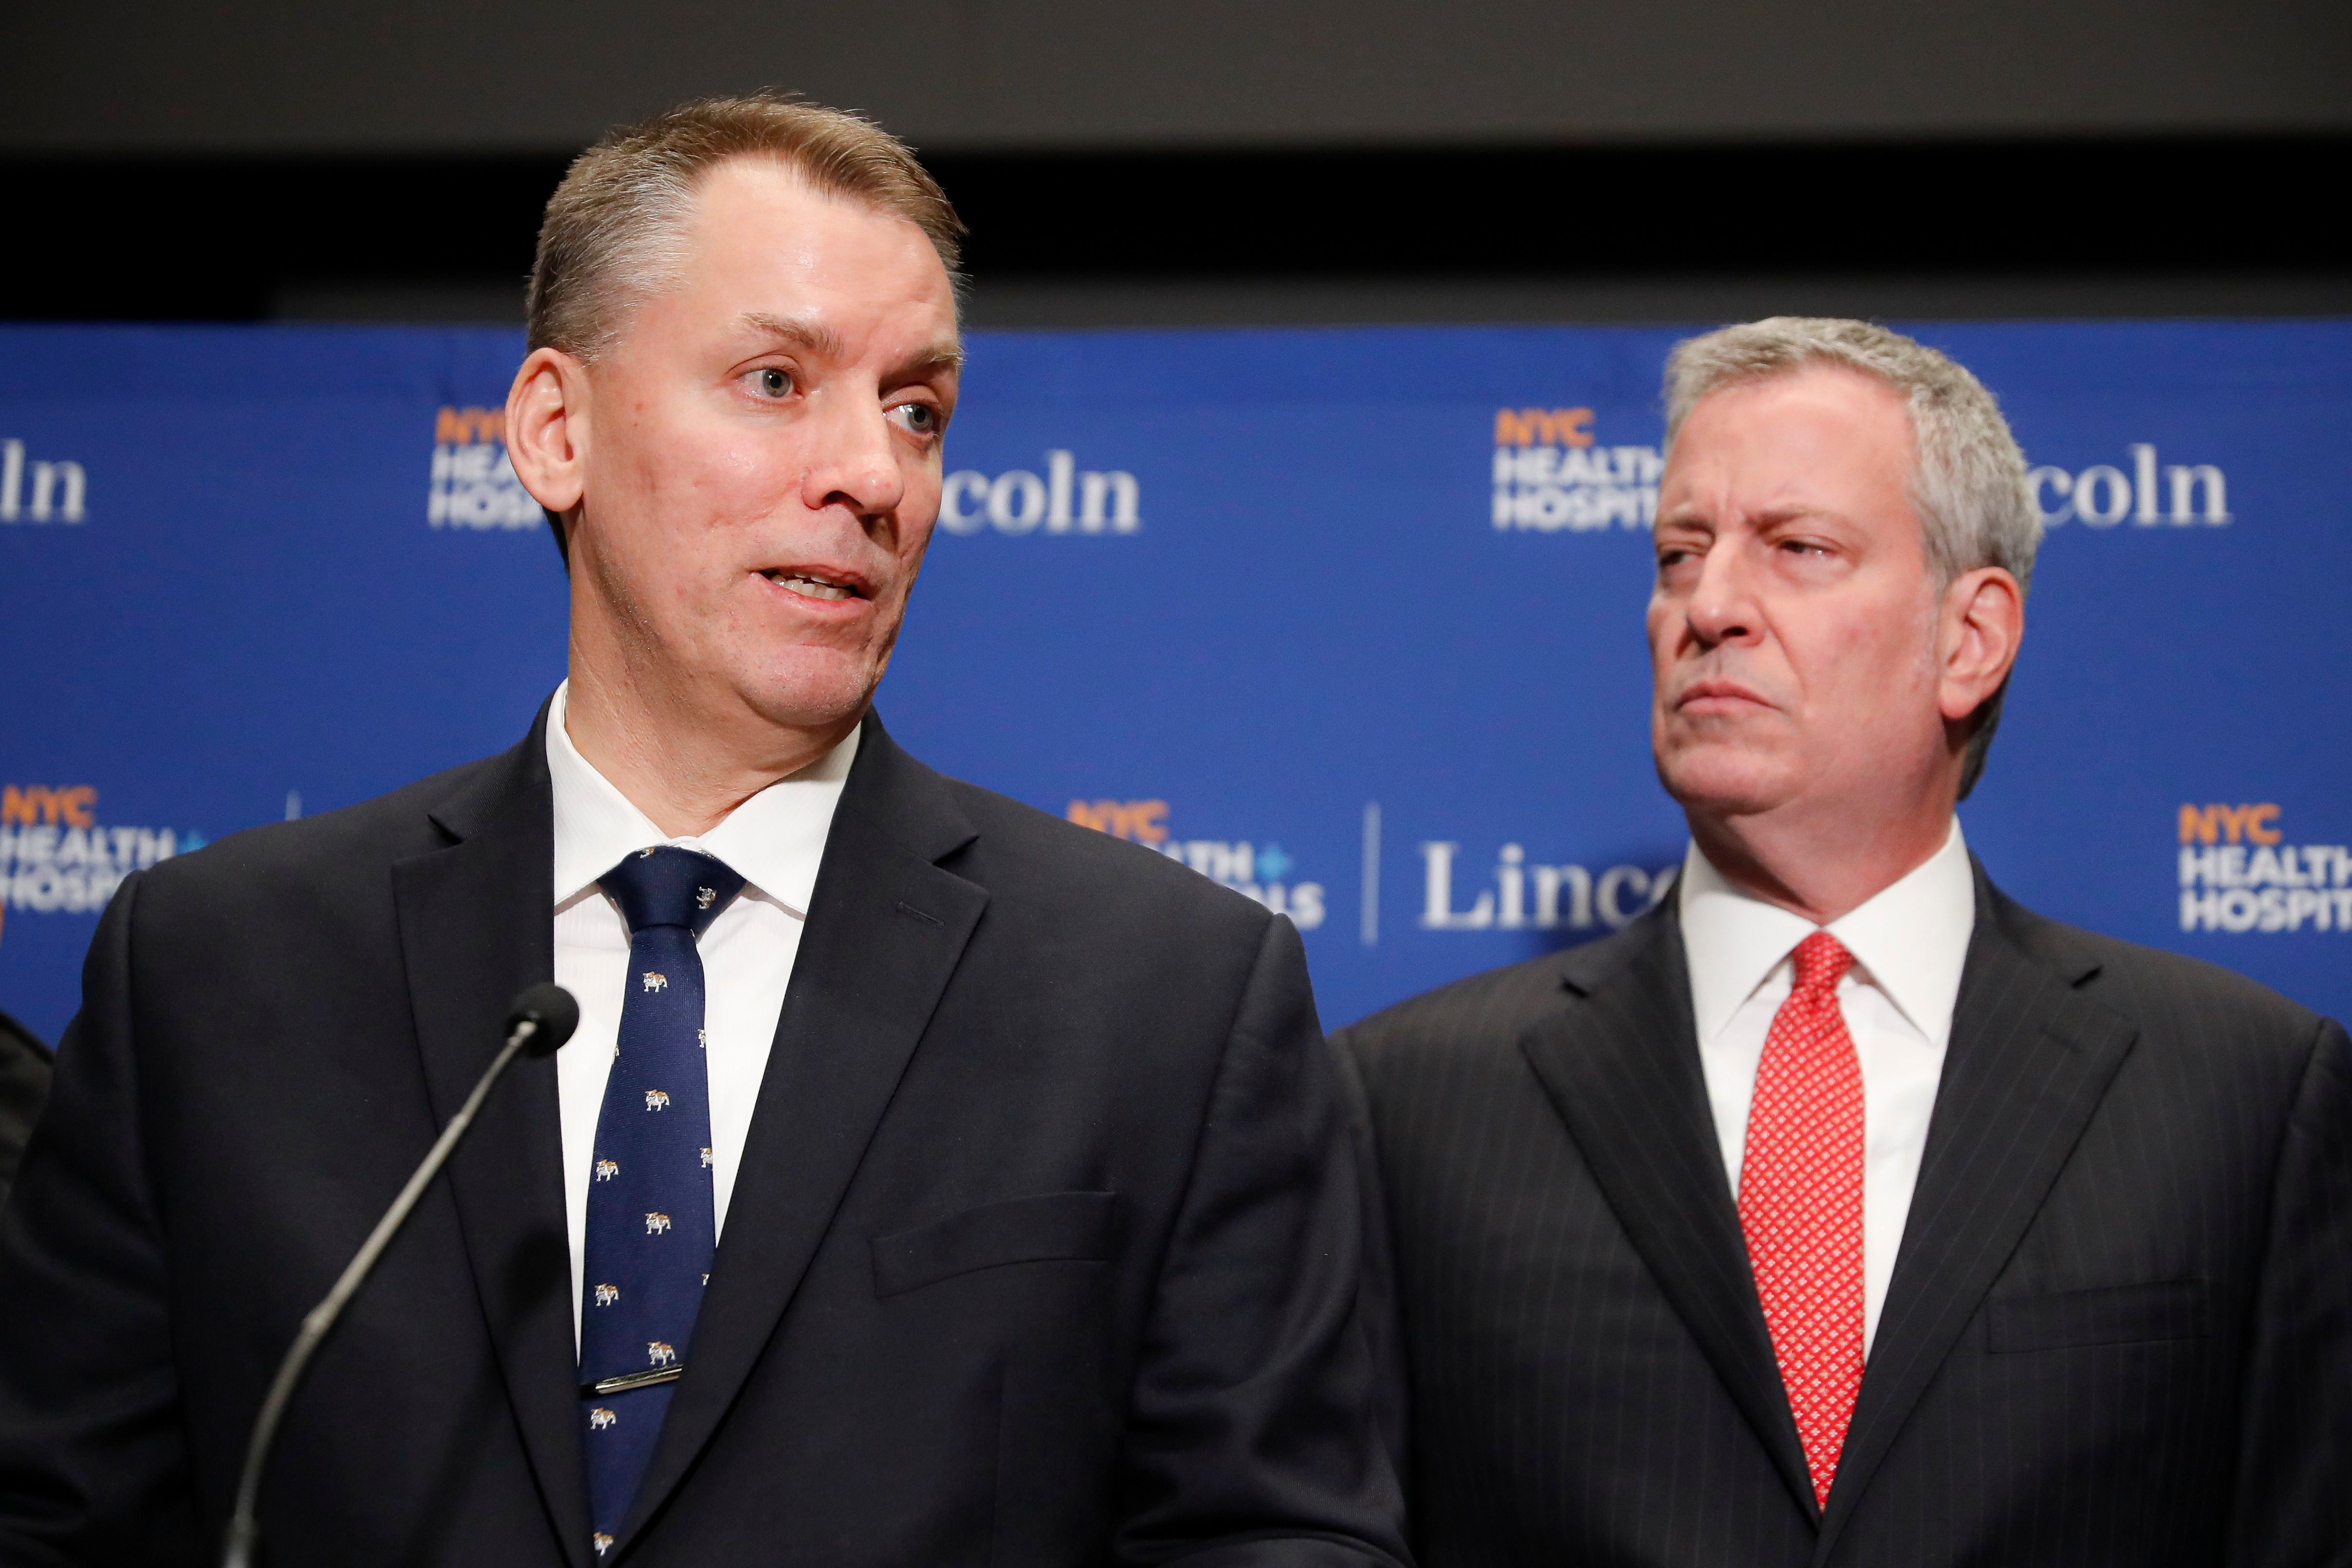 NYPD Commissioner Dermot Shea and Mayor Bill de Blasio at a press conference in February.